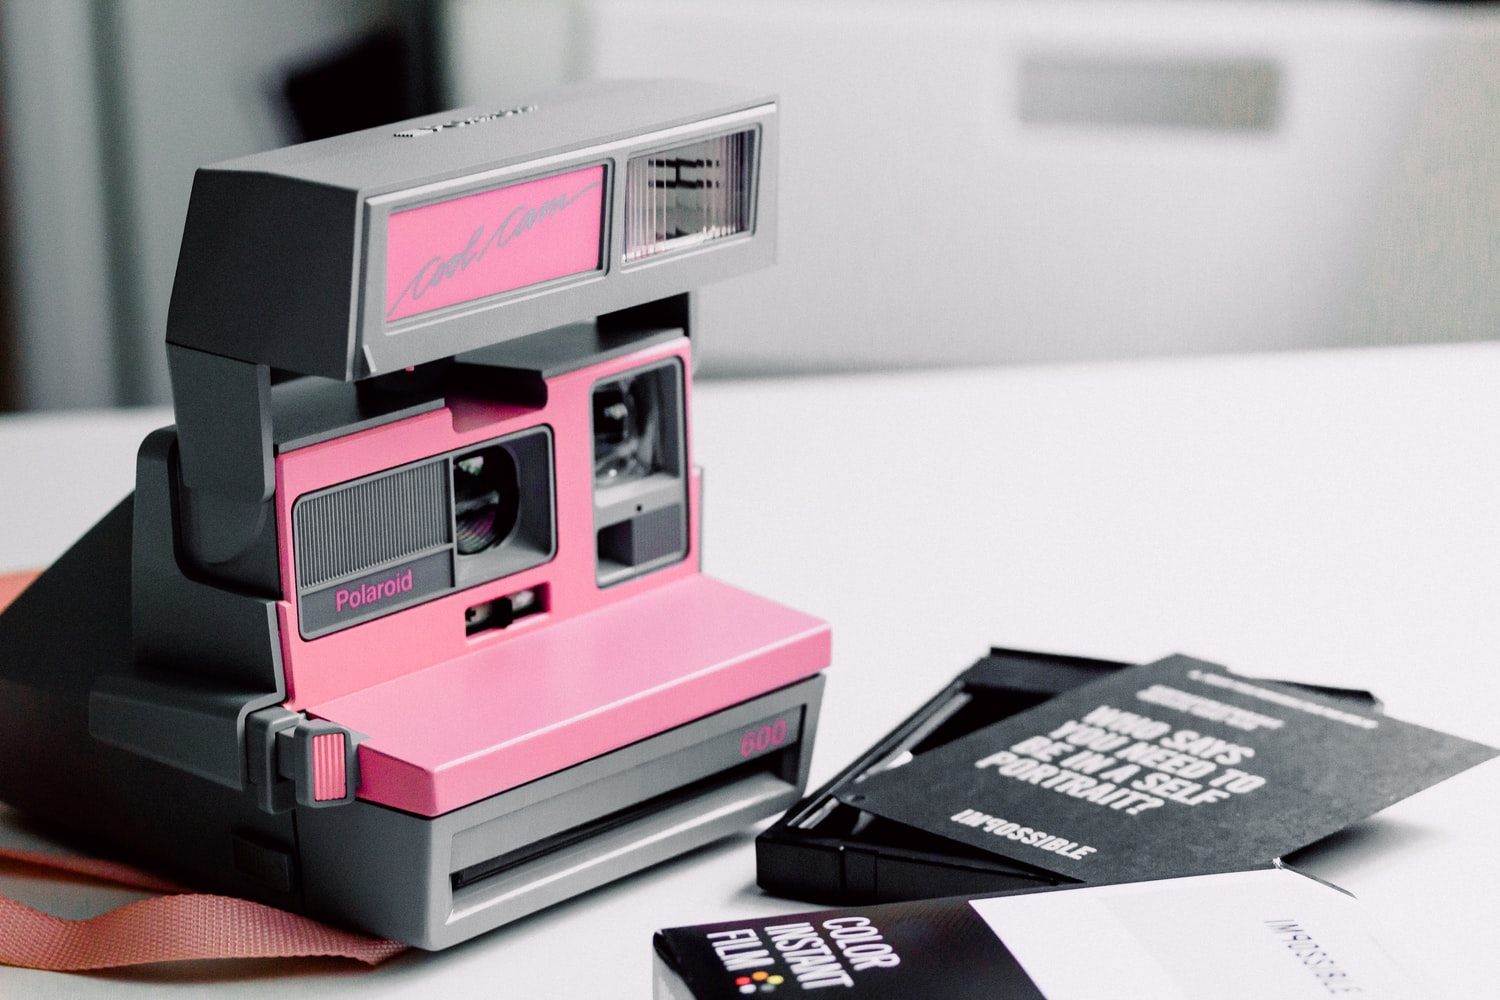 Pink polaroid camera on the table